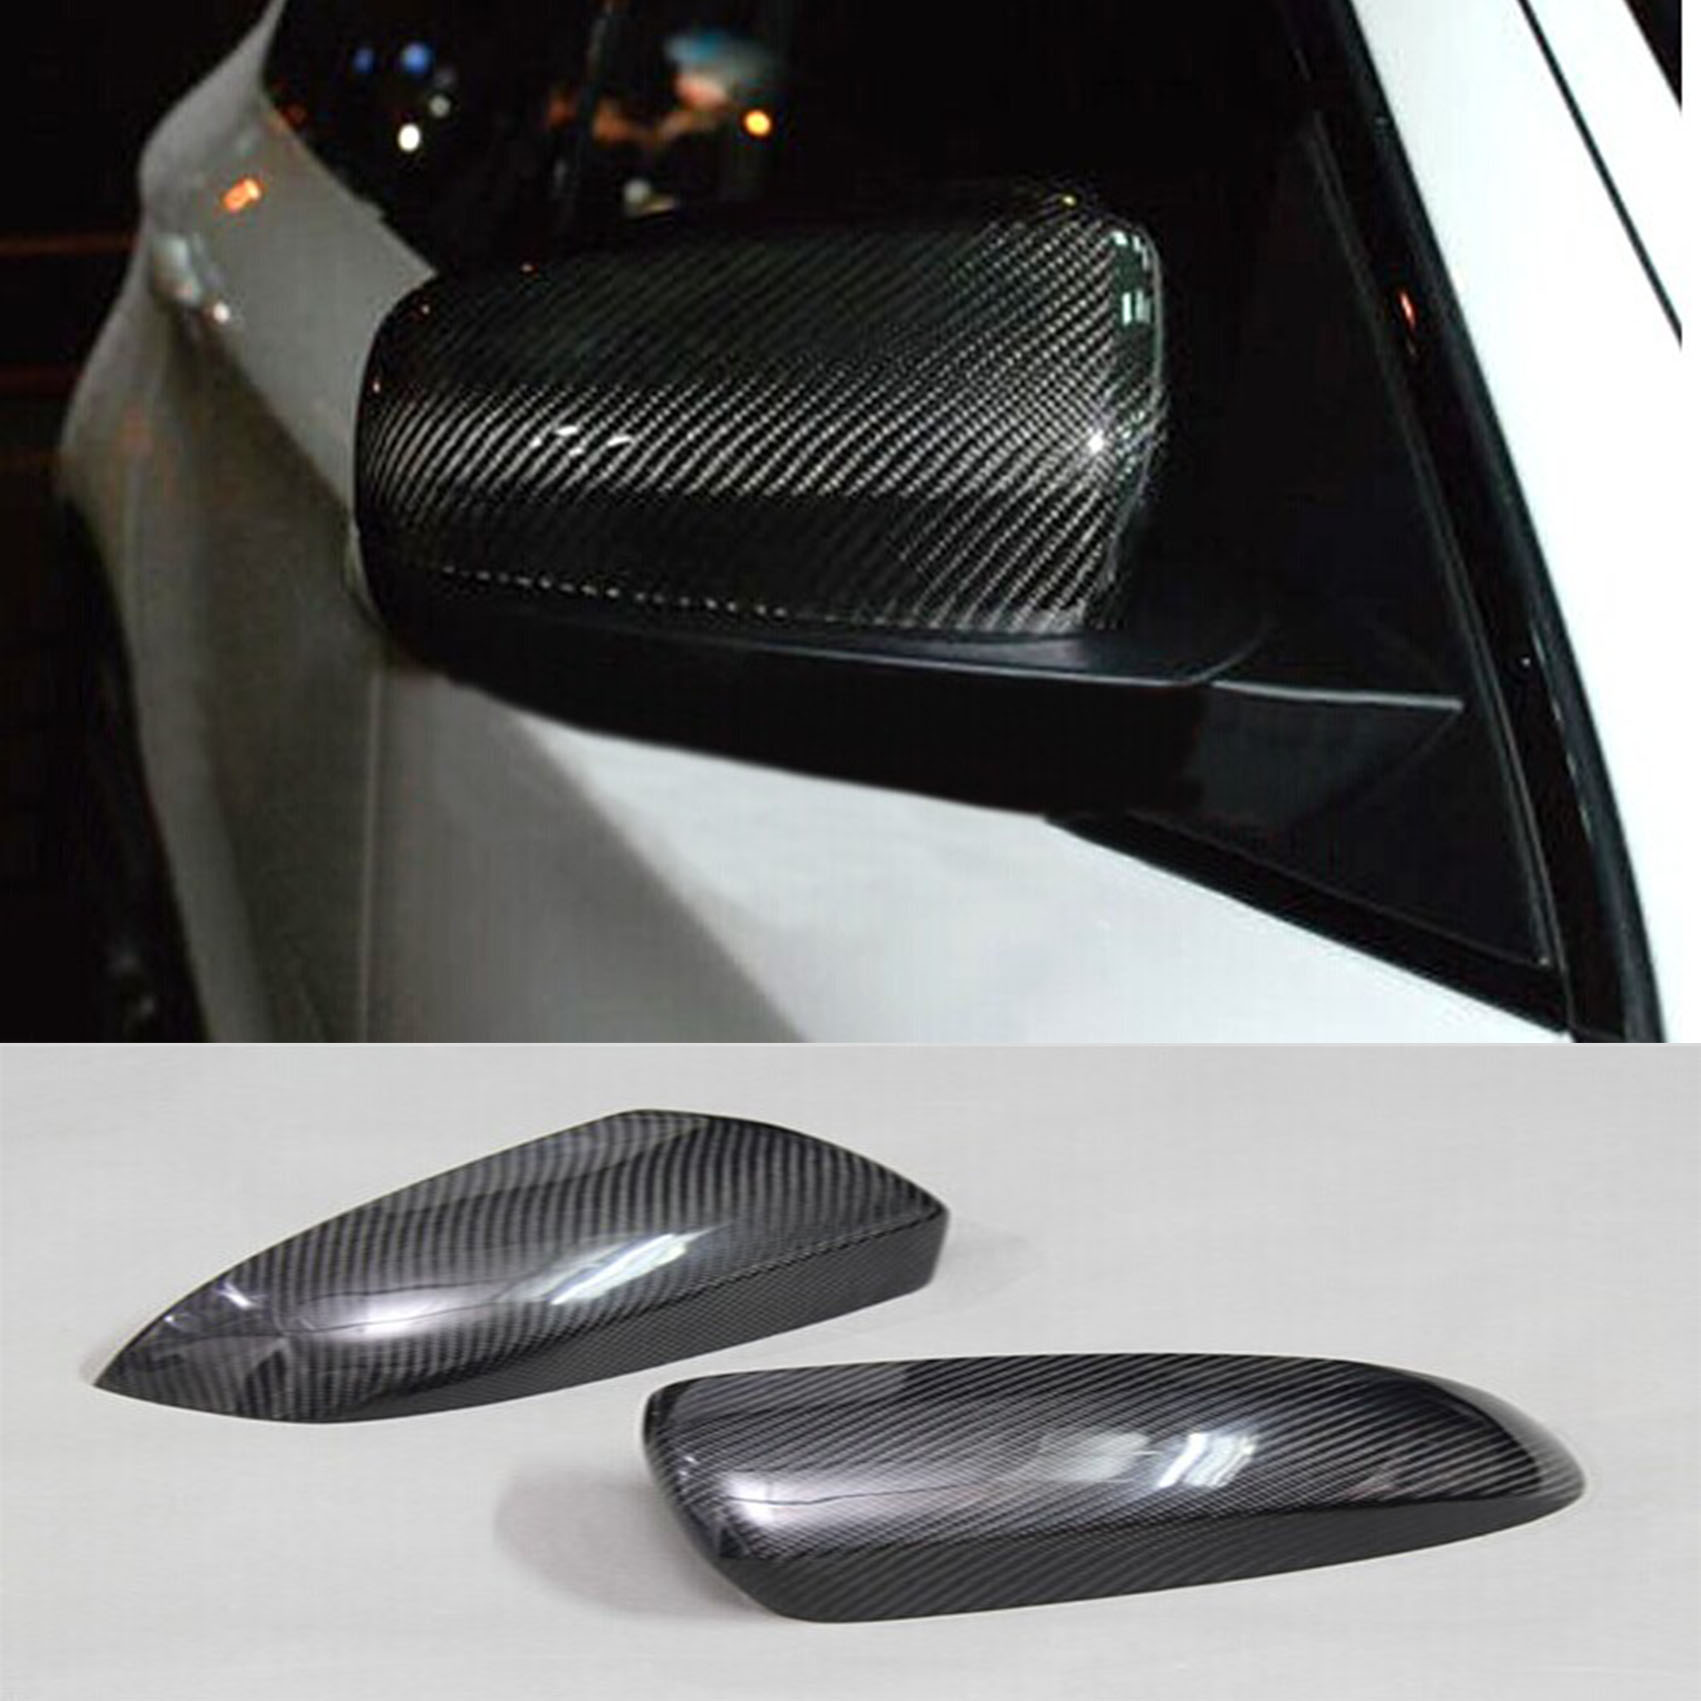 X5 E70 X6 E71 Side Wing Rearview Mirror Cover Caps for BMW 2007-2013 Carbon Fiber carbon fiber side wing mirror cover caps for volkswagen vw golf mk5 2005 2007